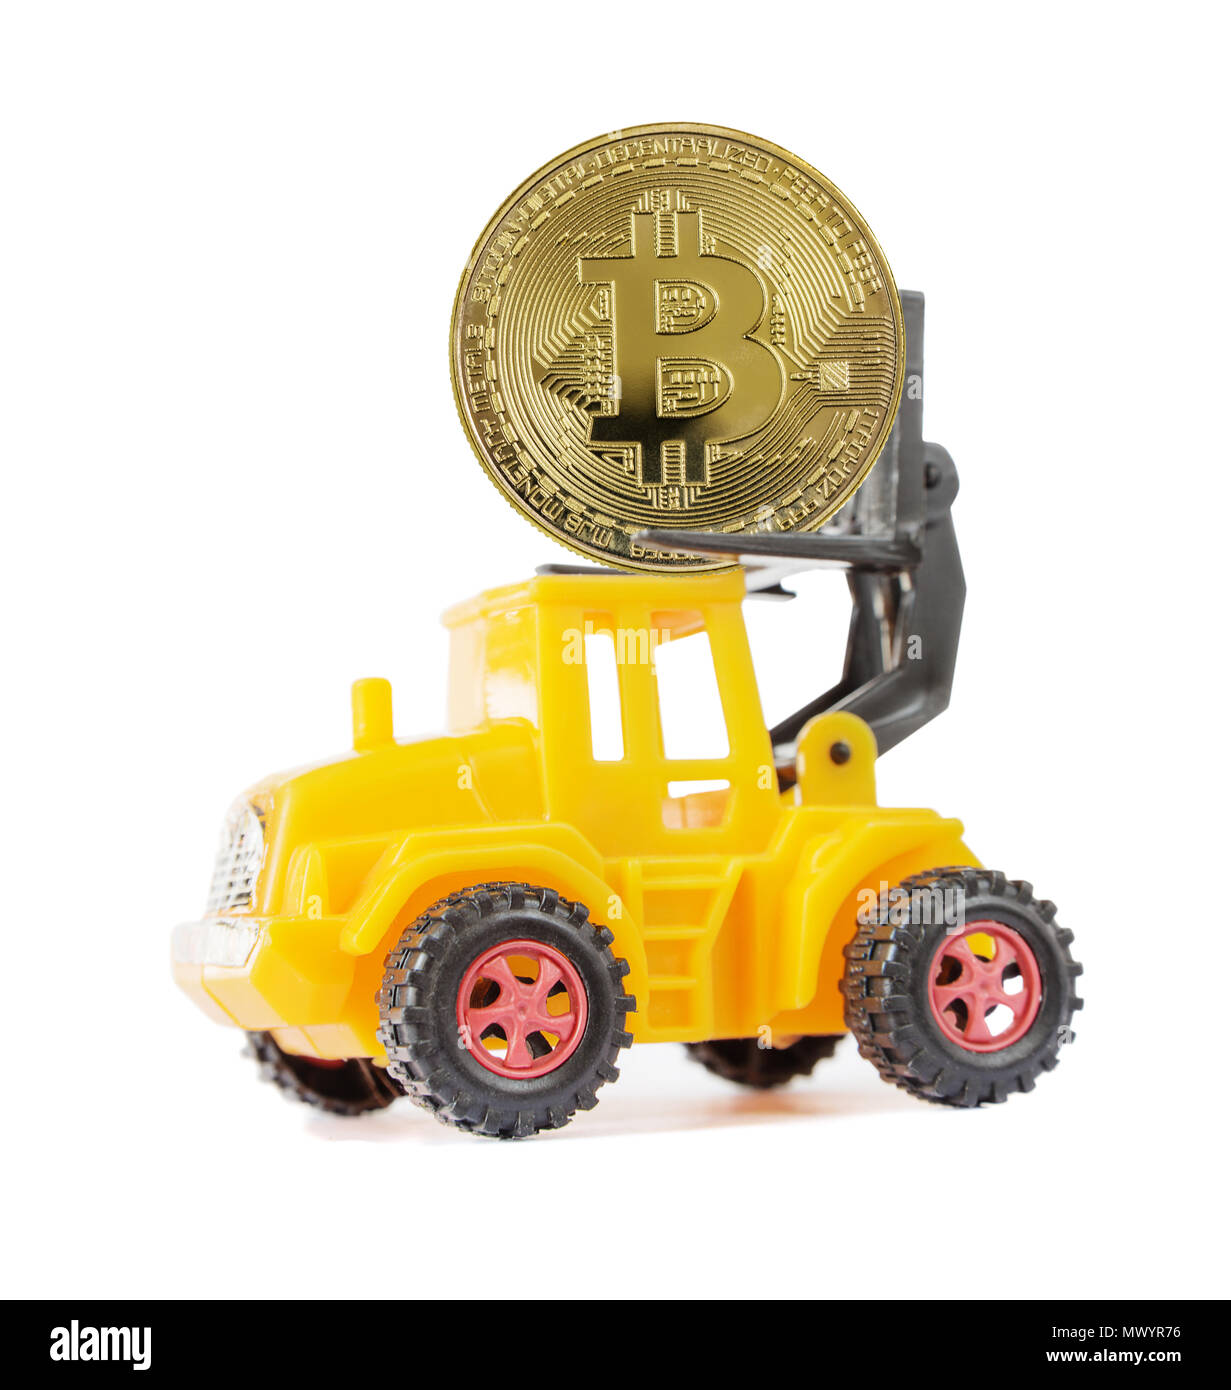 Yellow toy forklift transports a symbolic coin of bitcoin crypto currency, new digital money in cyber world, isolated on a white background, side view Stock Photo